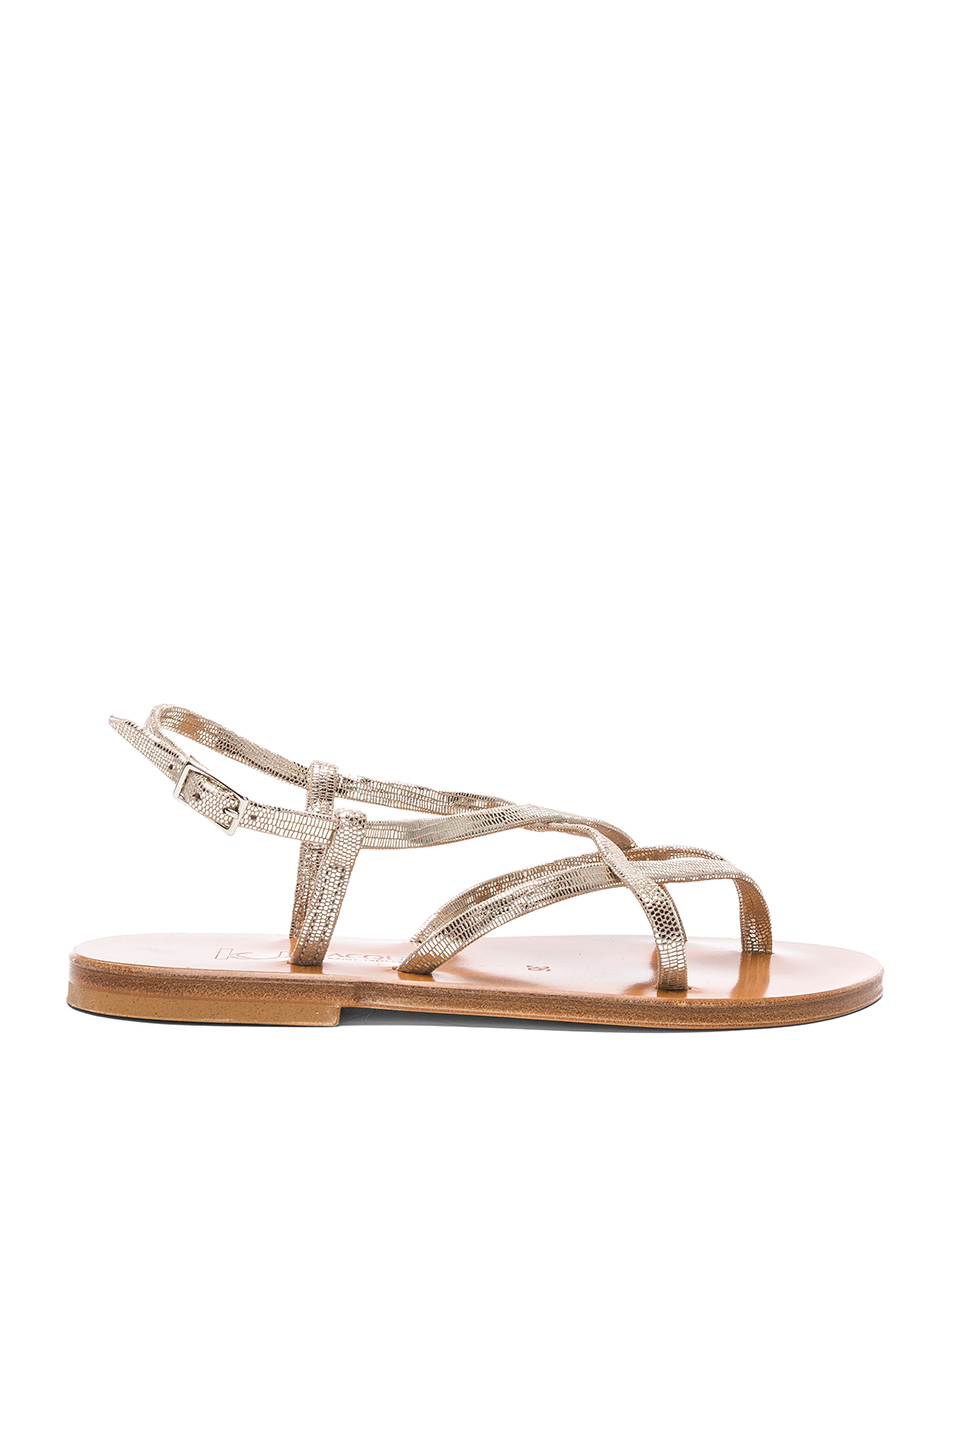 K Jacques Blueut Sandals